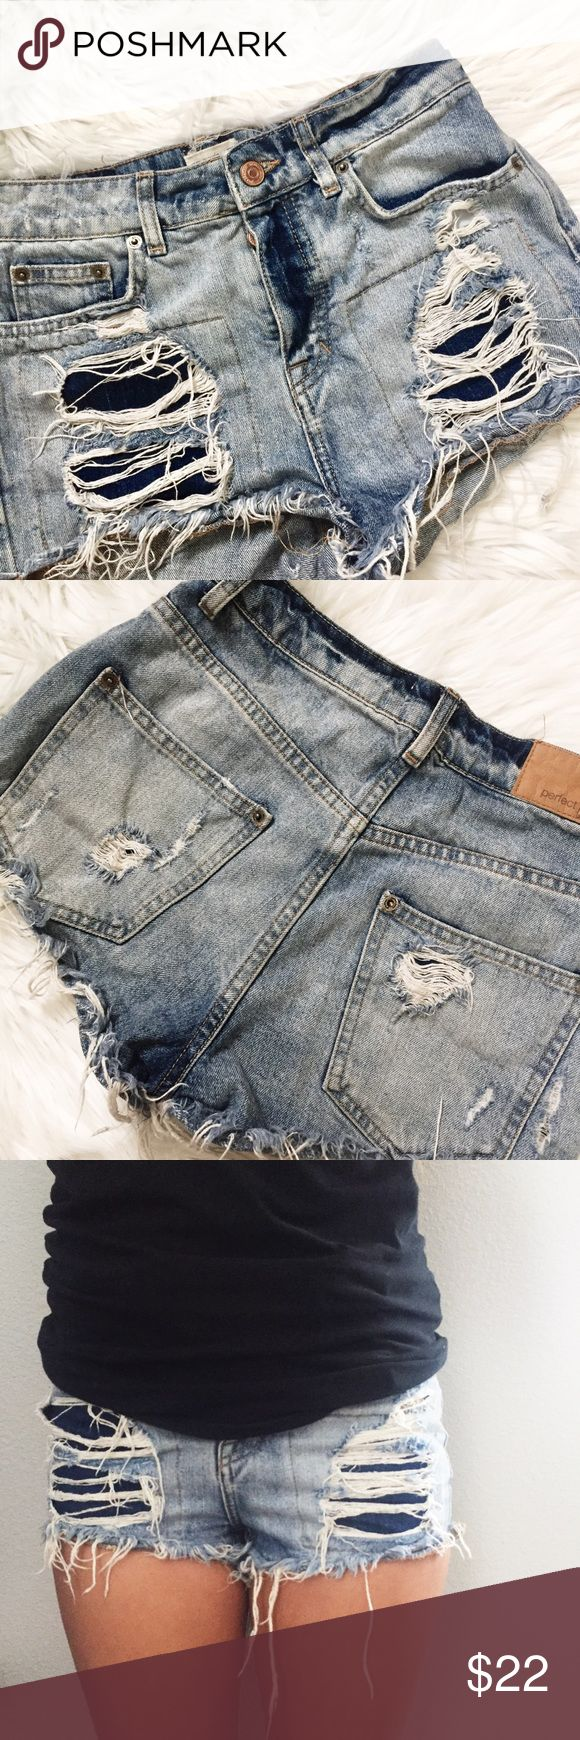 "Distressed denim shorts Tag reads size 34 but it's EUR; equivalent to USA size 4. Great condition. Heavy distress front, light distress back. Acid wash. Button enclosure. Made in Turkey.  · 100% cotton · Length | 10"" · Inseam 